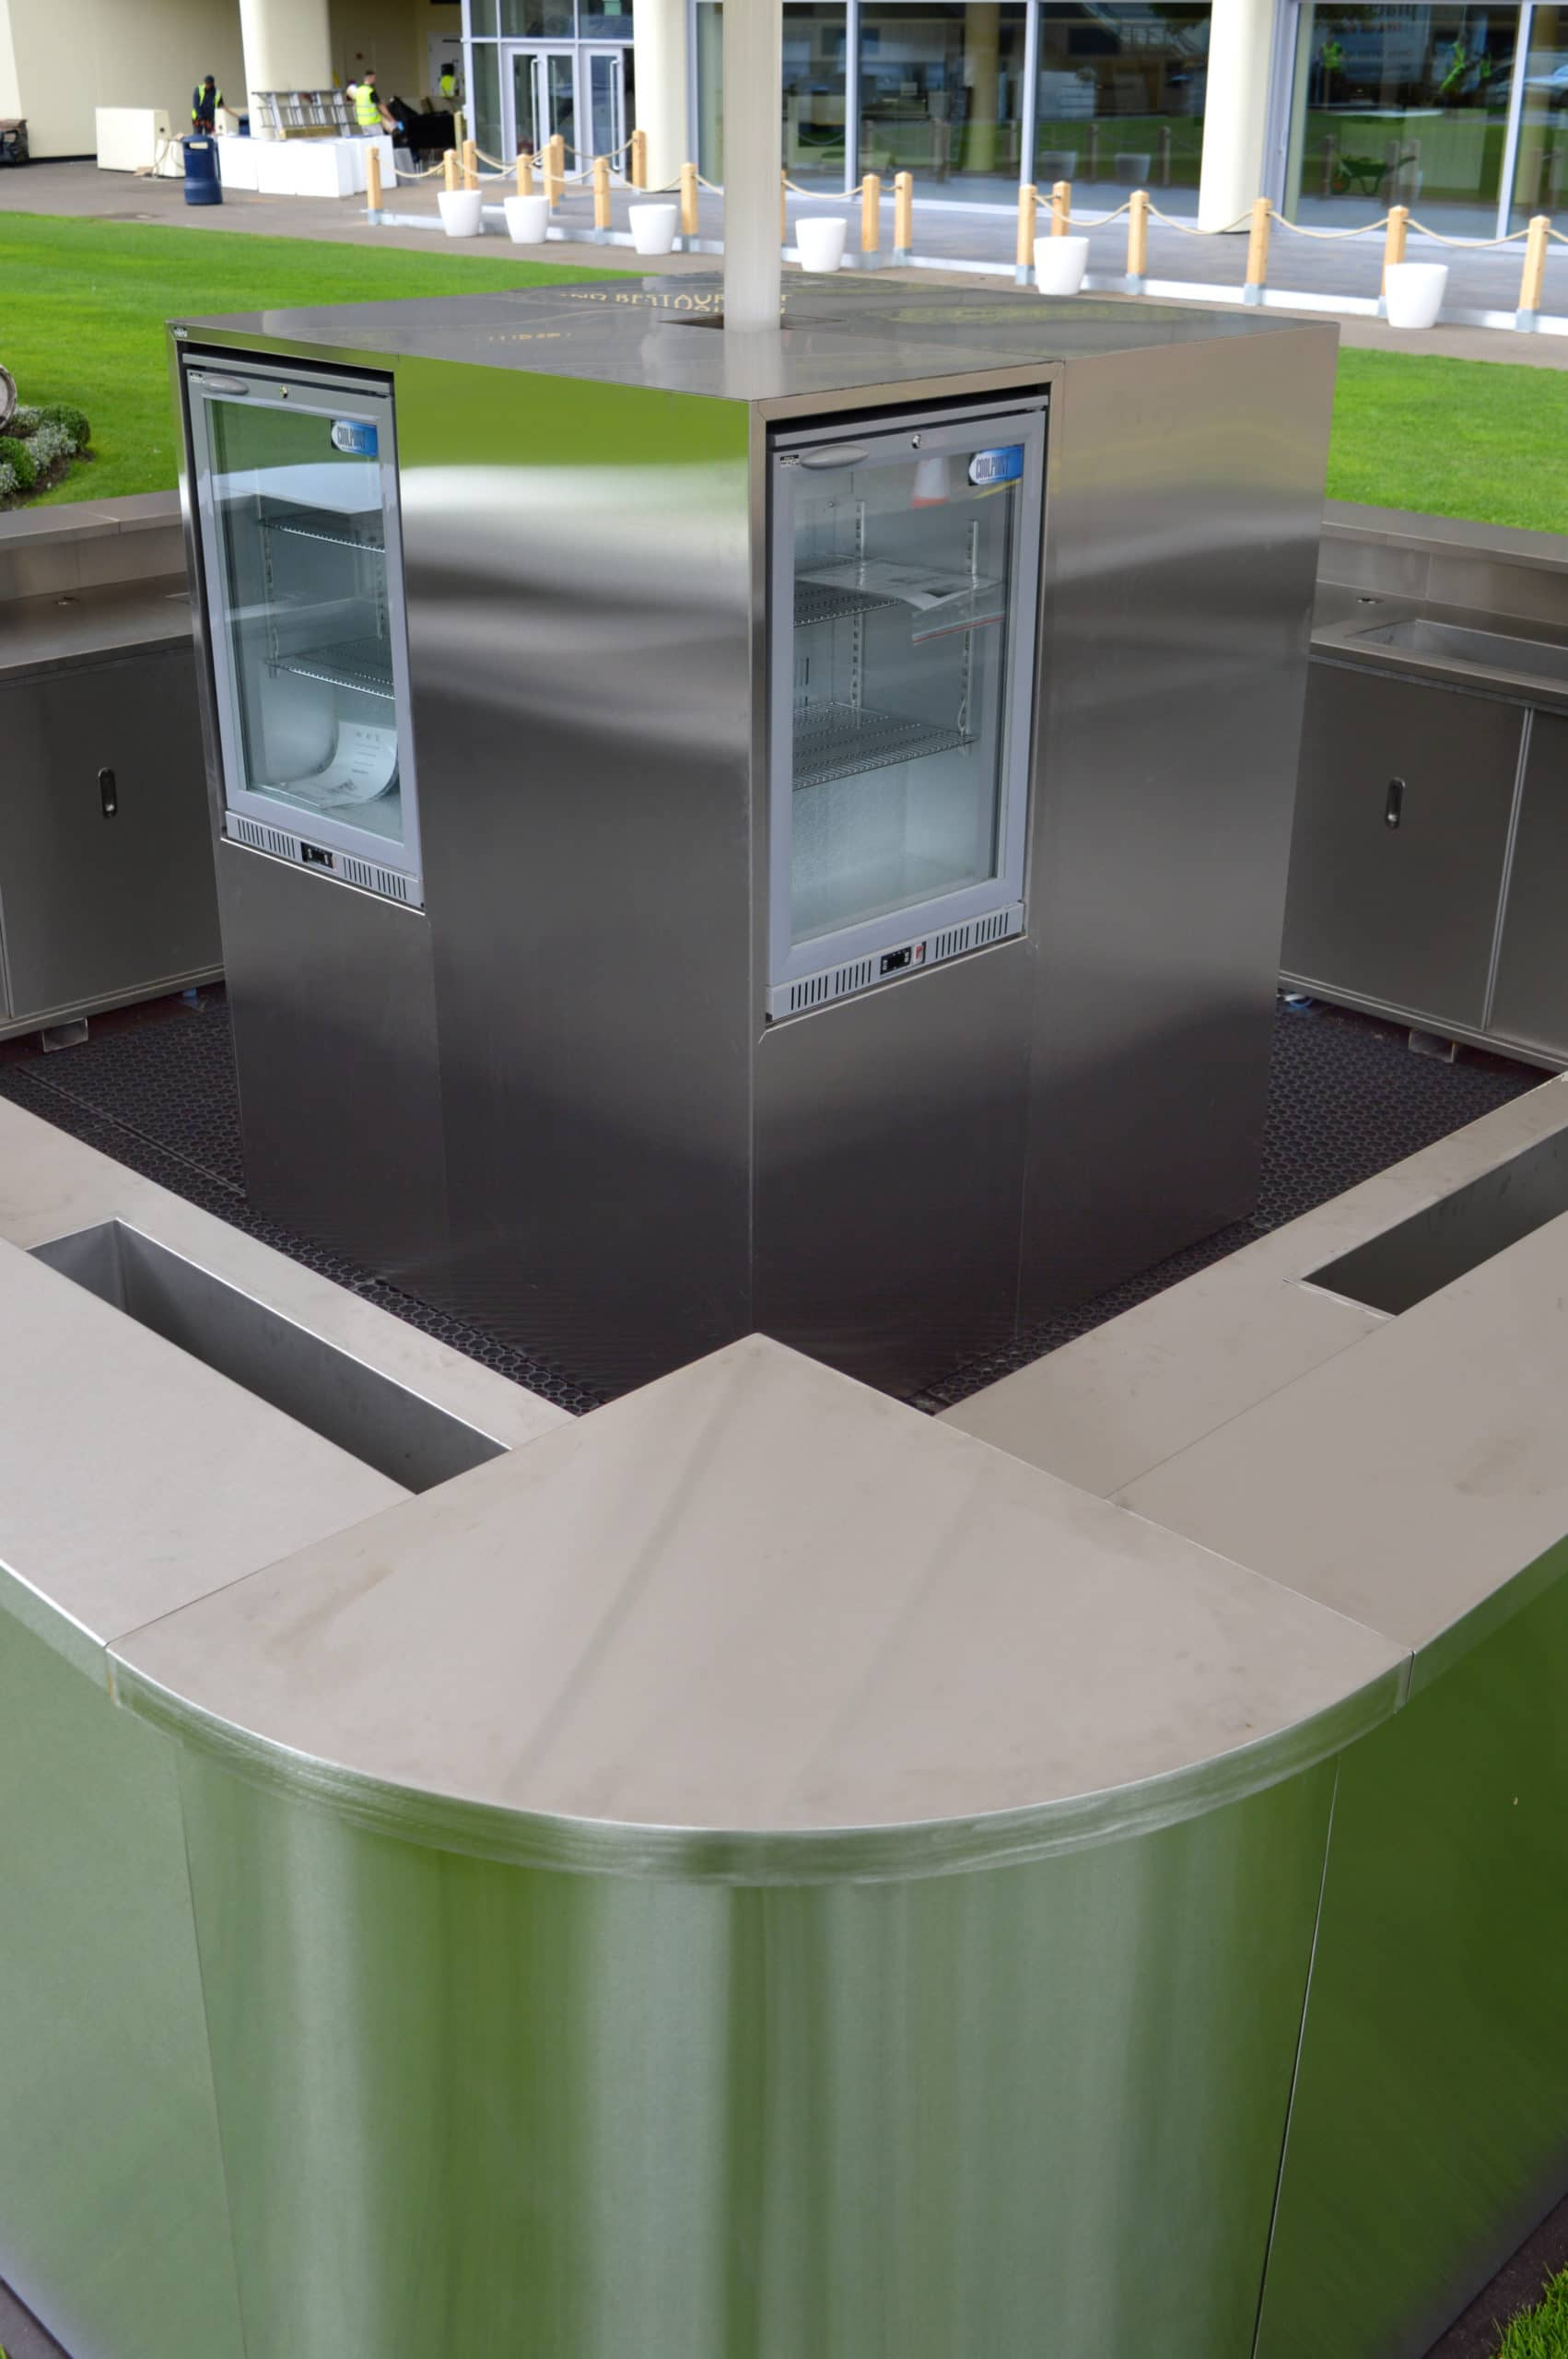 <p>Bespoke Products – Mobile Carts – Mobile Bars – Custom Modular Design – Stainless Steel Corner Unit & Refrigeration</p> <p></p> <p>Stylish, eloquent & taylor made Mobile Drinks Bar image of standard unit option</p> <p></p> <p>Designed to meet the customer needs & objectives to include draught dispense, champagne, Pimms, multi-purpose etc or whatever the customer requires to make their mobile beverage bar unique & exclusive to their brand</p> <p></p> <p>One example of a design. We can design and manufacture to meet customer's specific objectives</p>